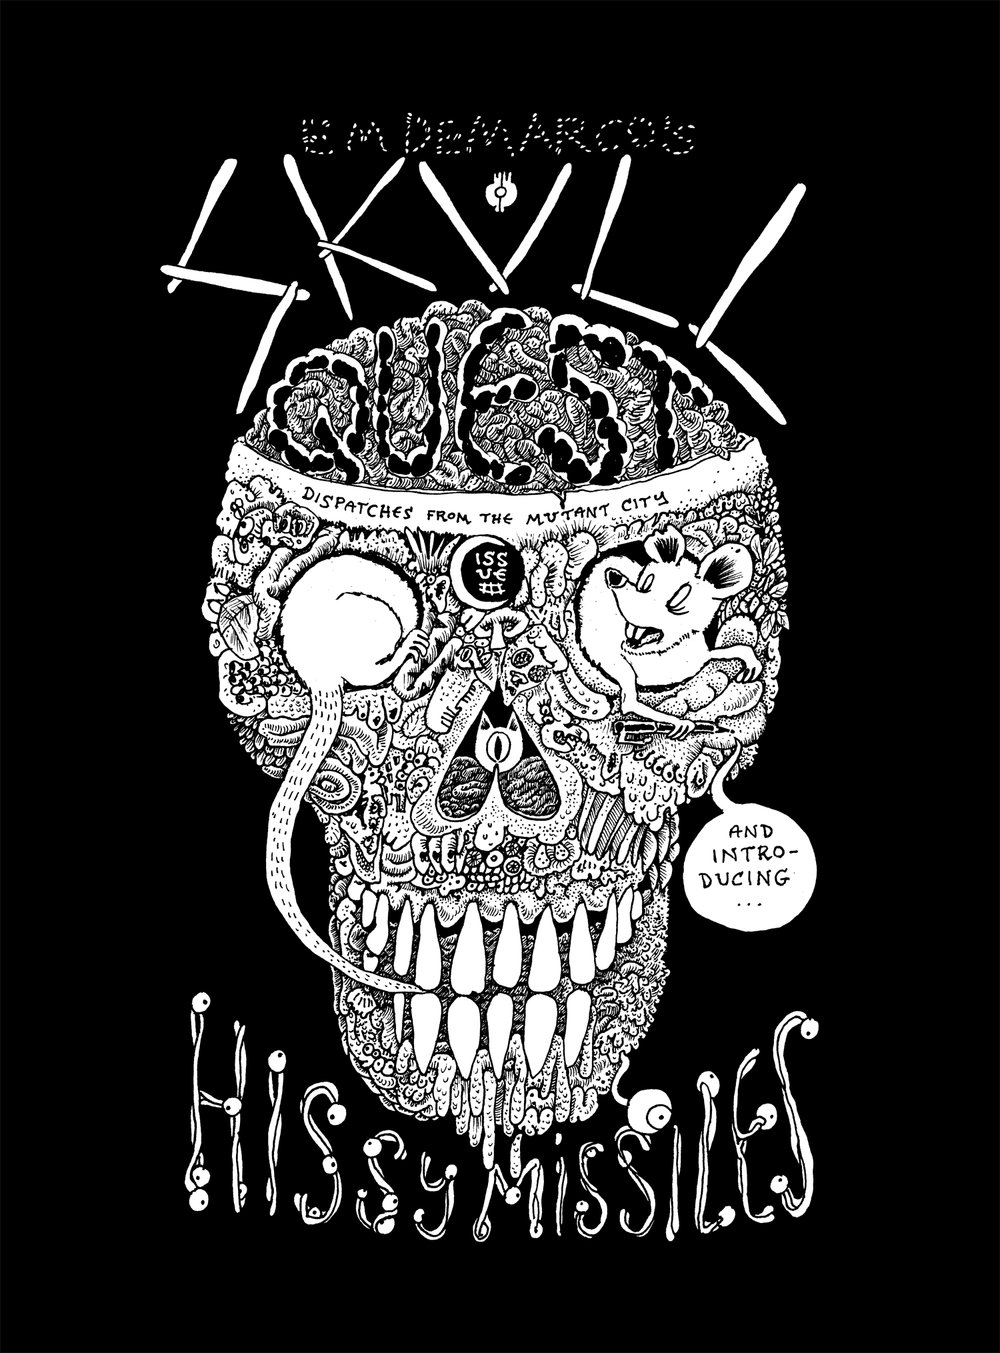 skull_quest_issue_3_front_outside_cover.jpg